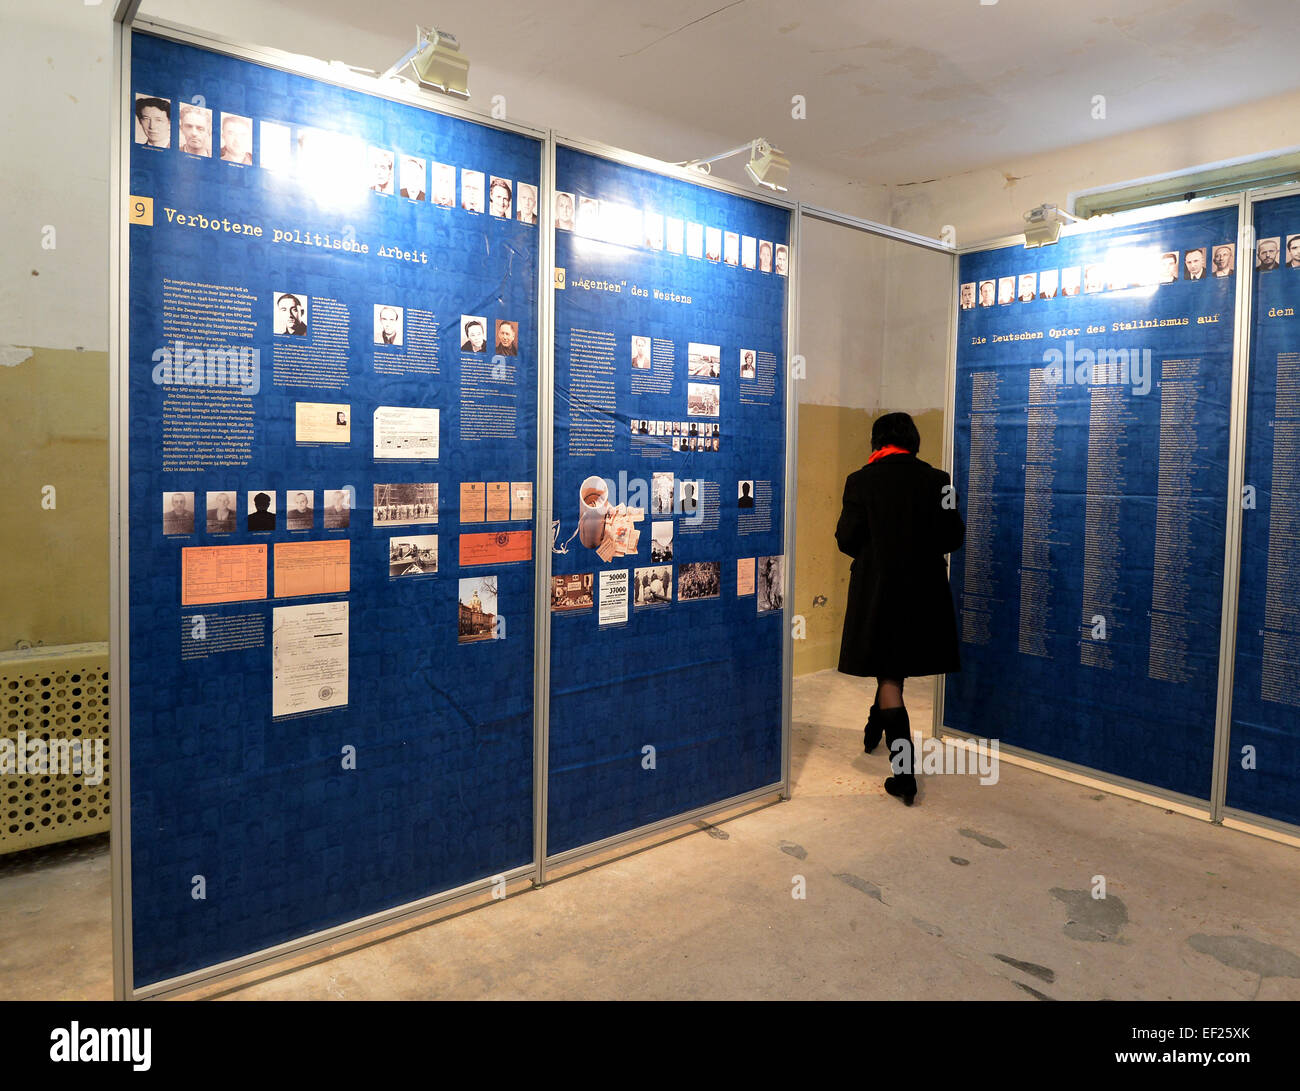 Potsdam, Germany. 21st Jan, 2015. The exhibition 'Erschossen in Moskau' (lit. shot in Moscow) is being shown - Stock Image